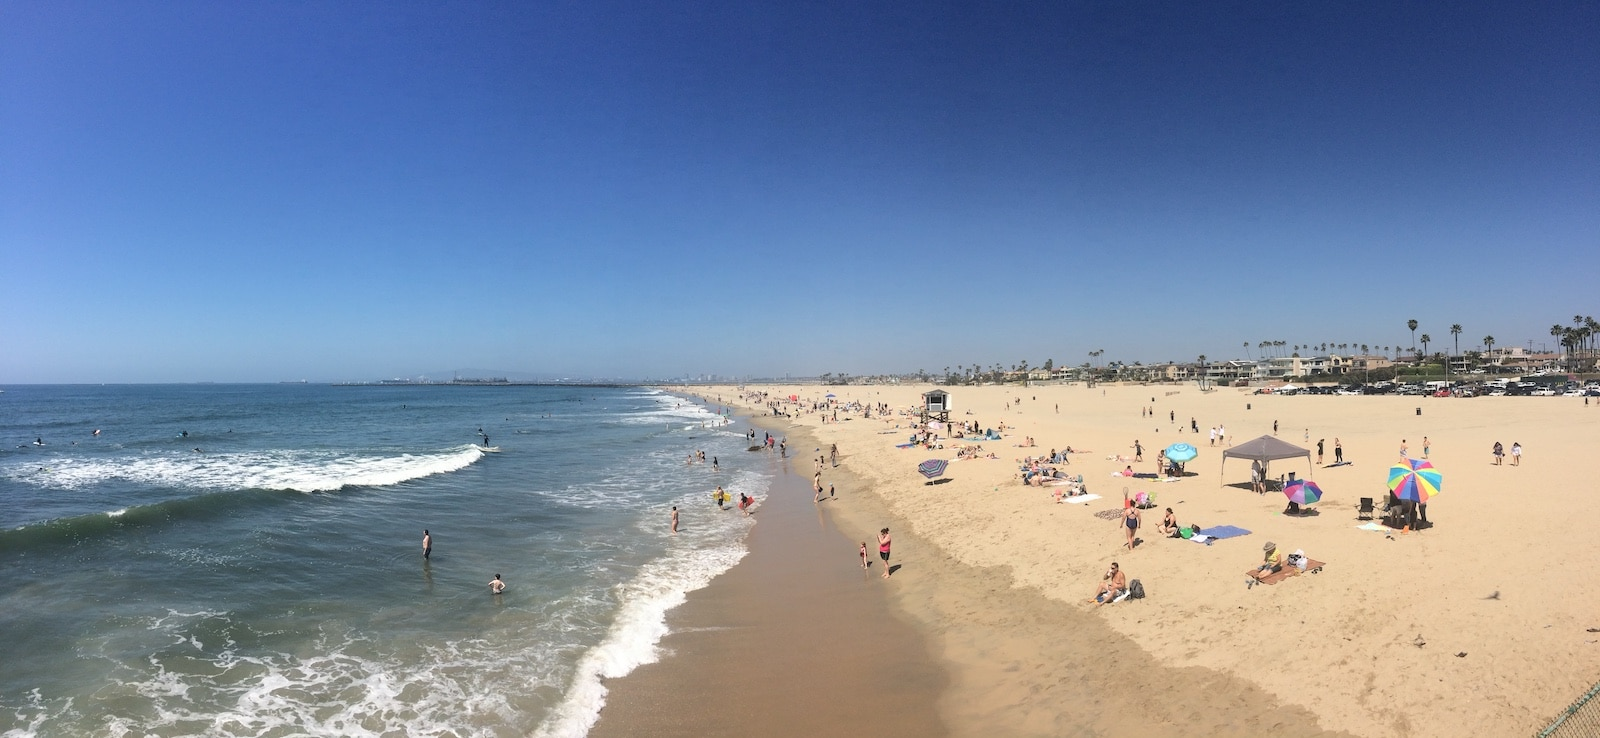 Seal Beach, Orange County